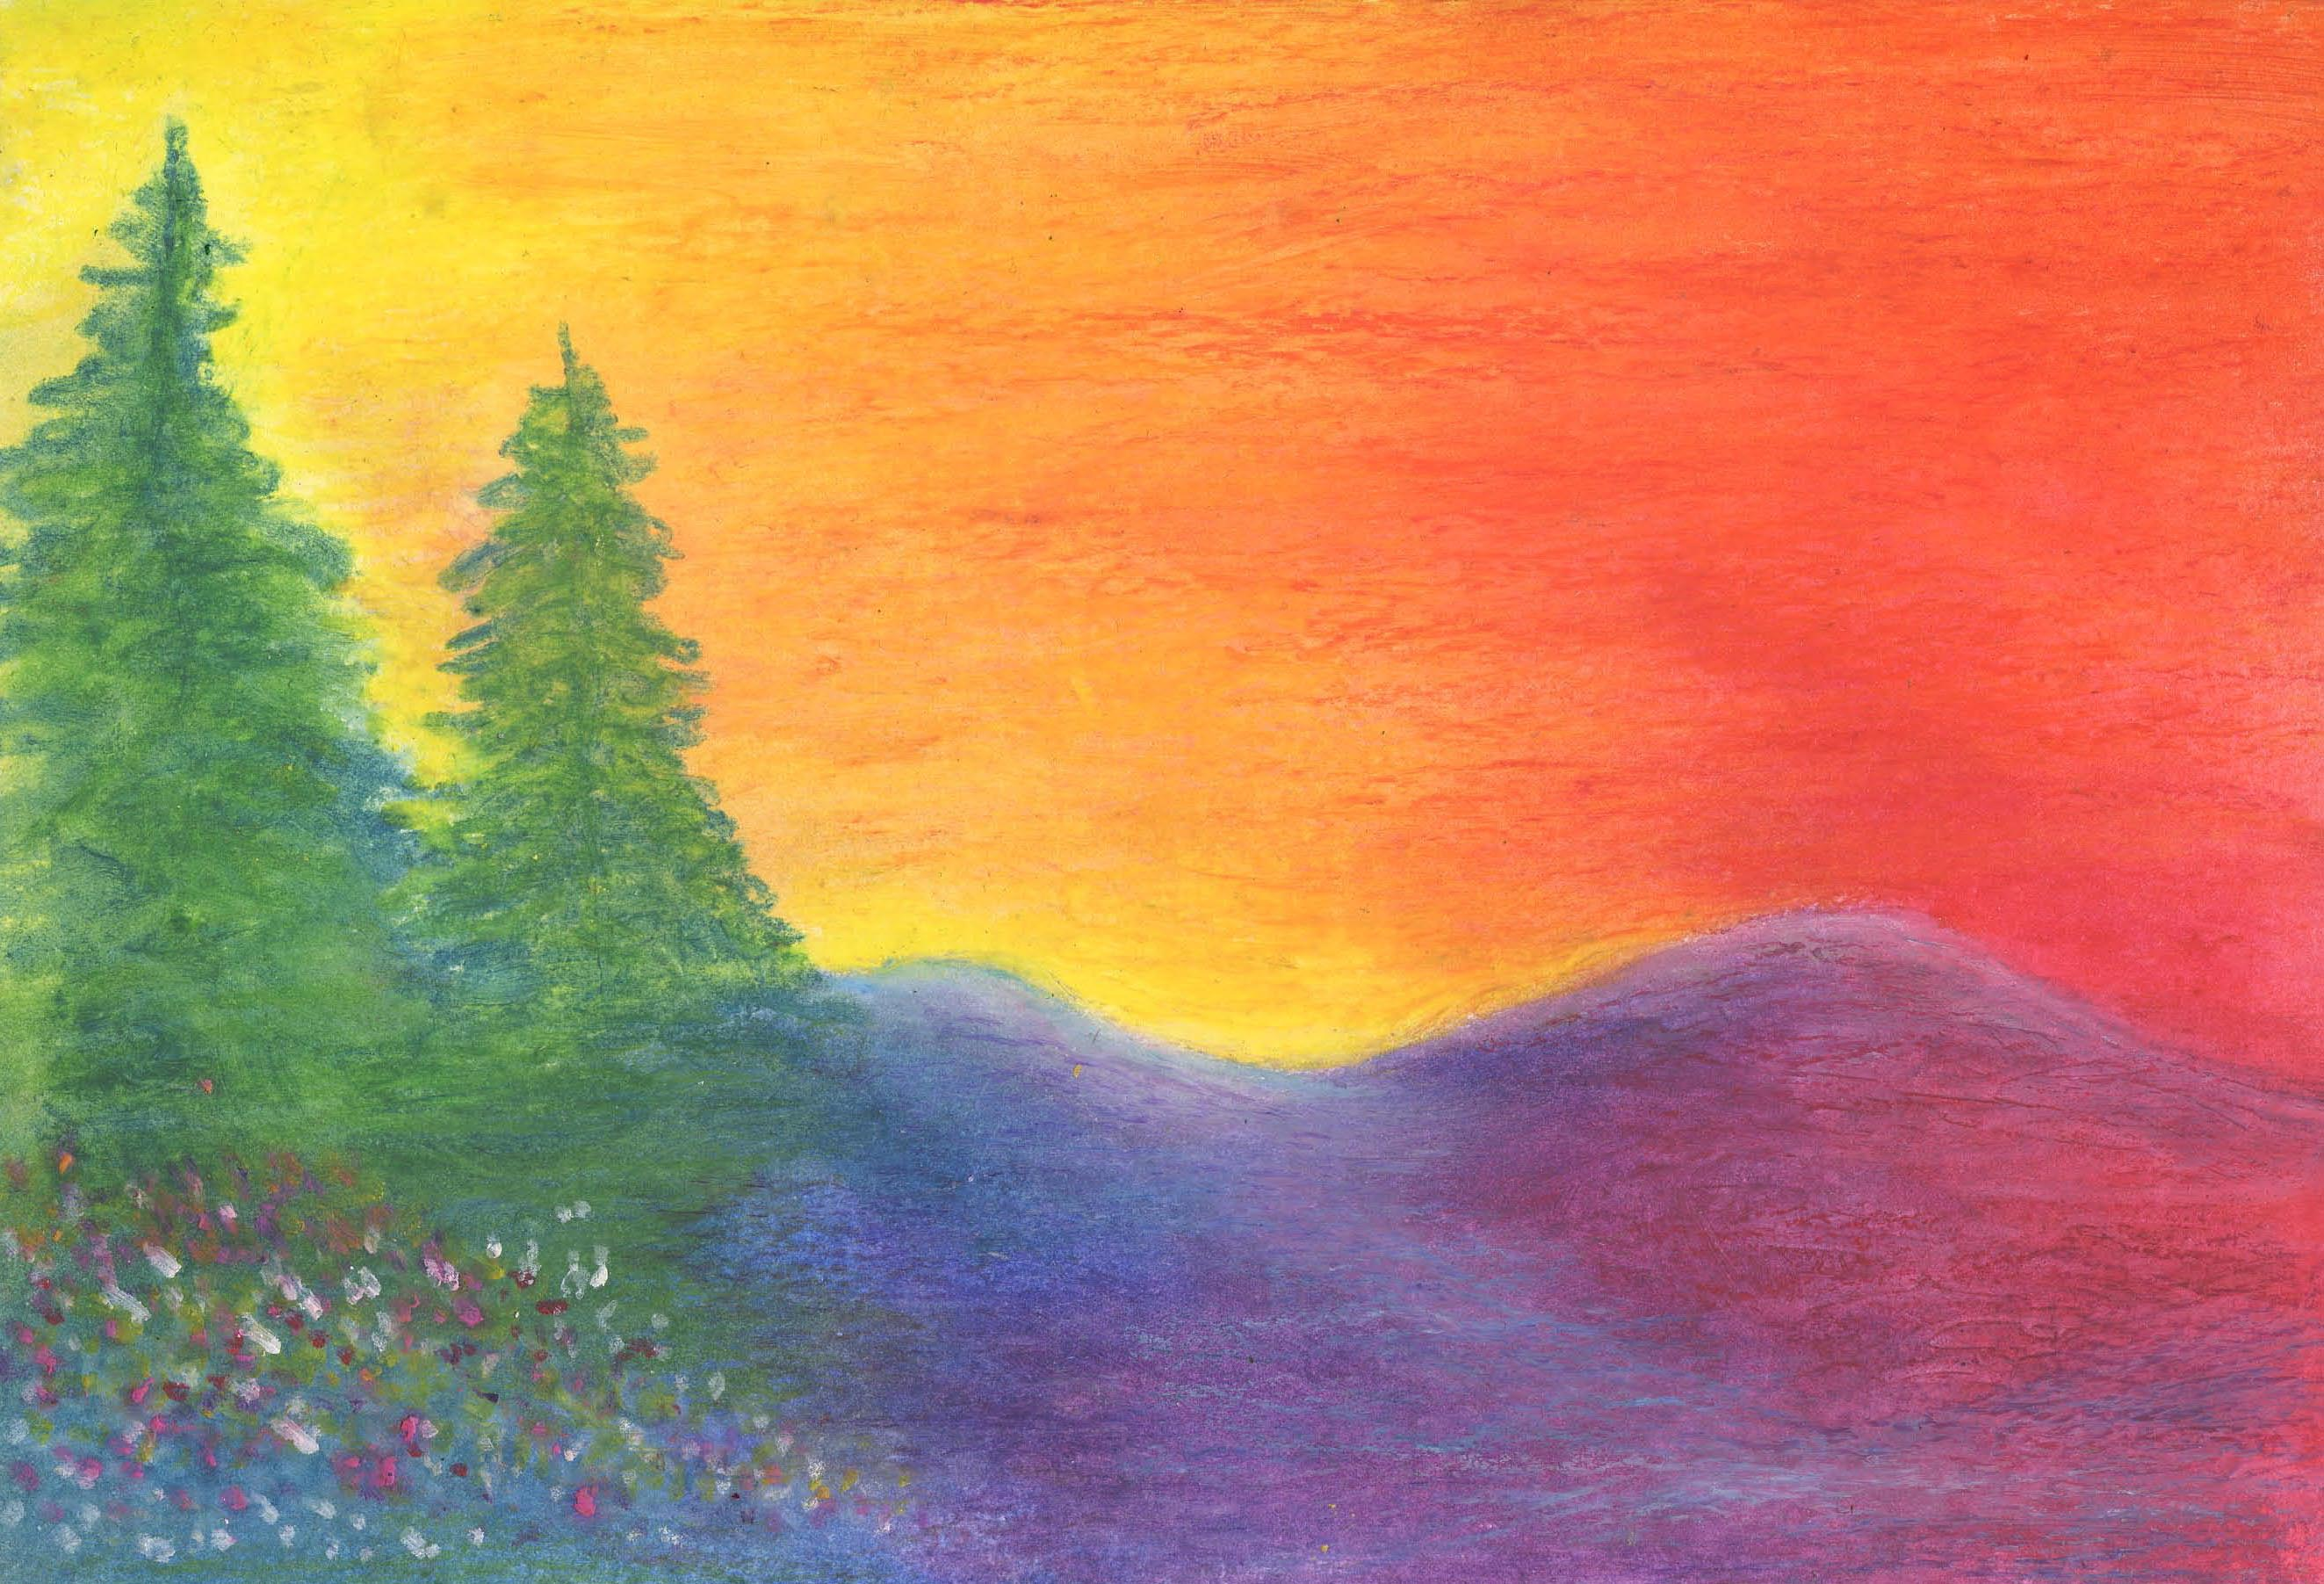 Sunrise in Oregon Oil Pastel 6 X 9 - $80